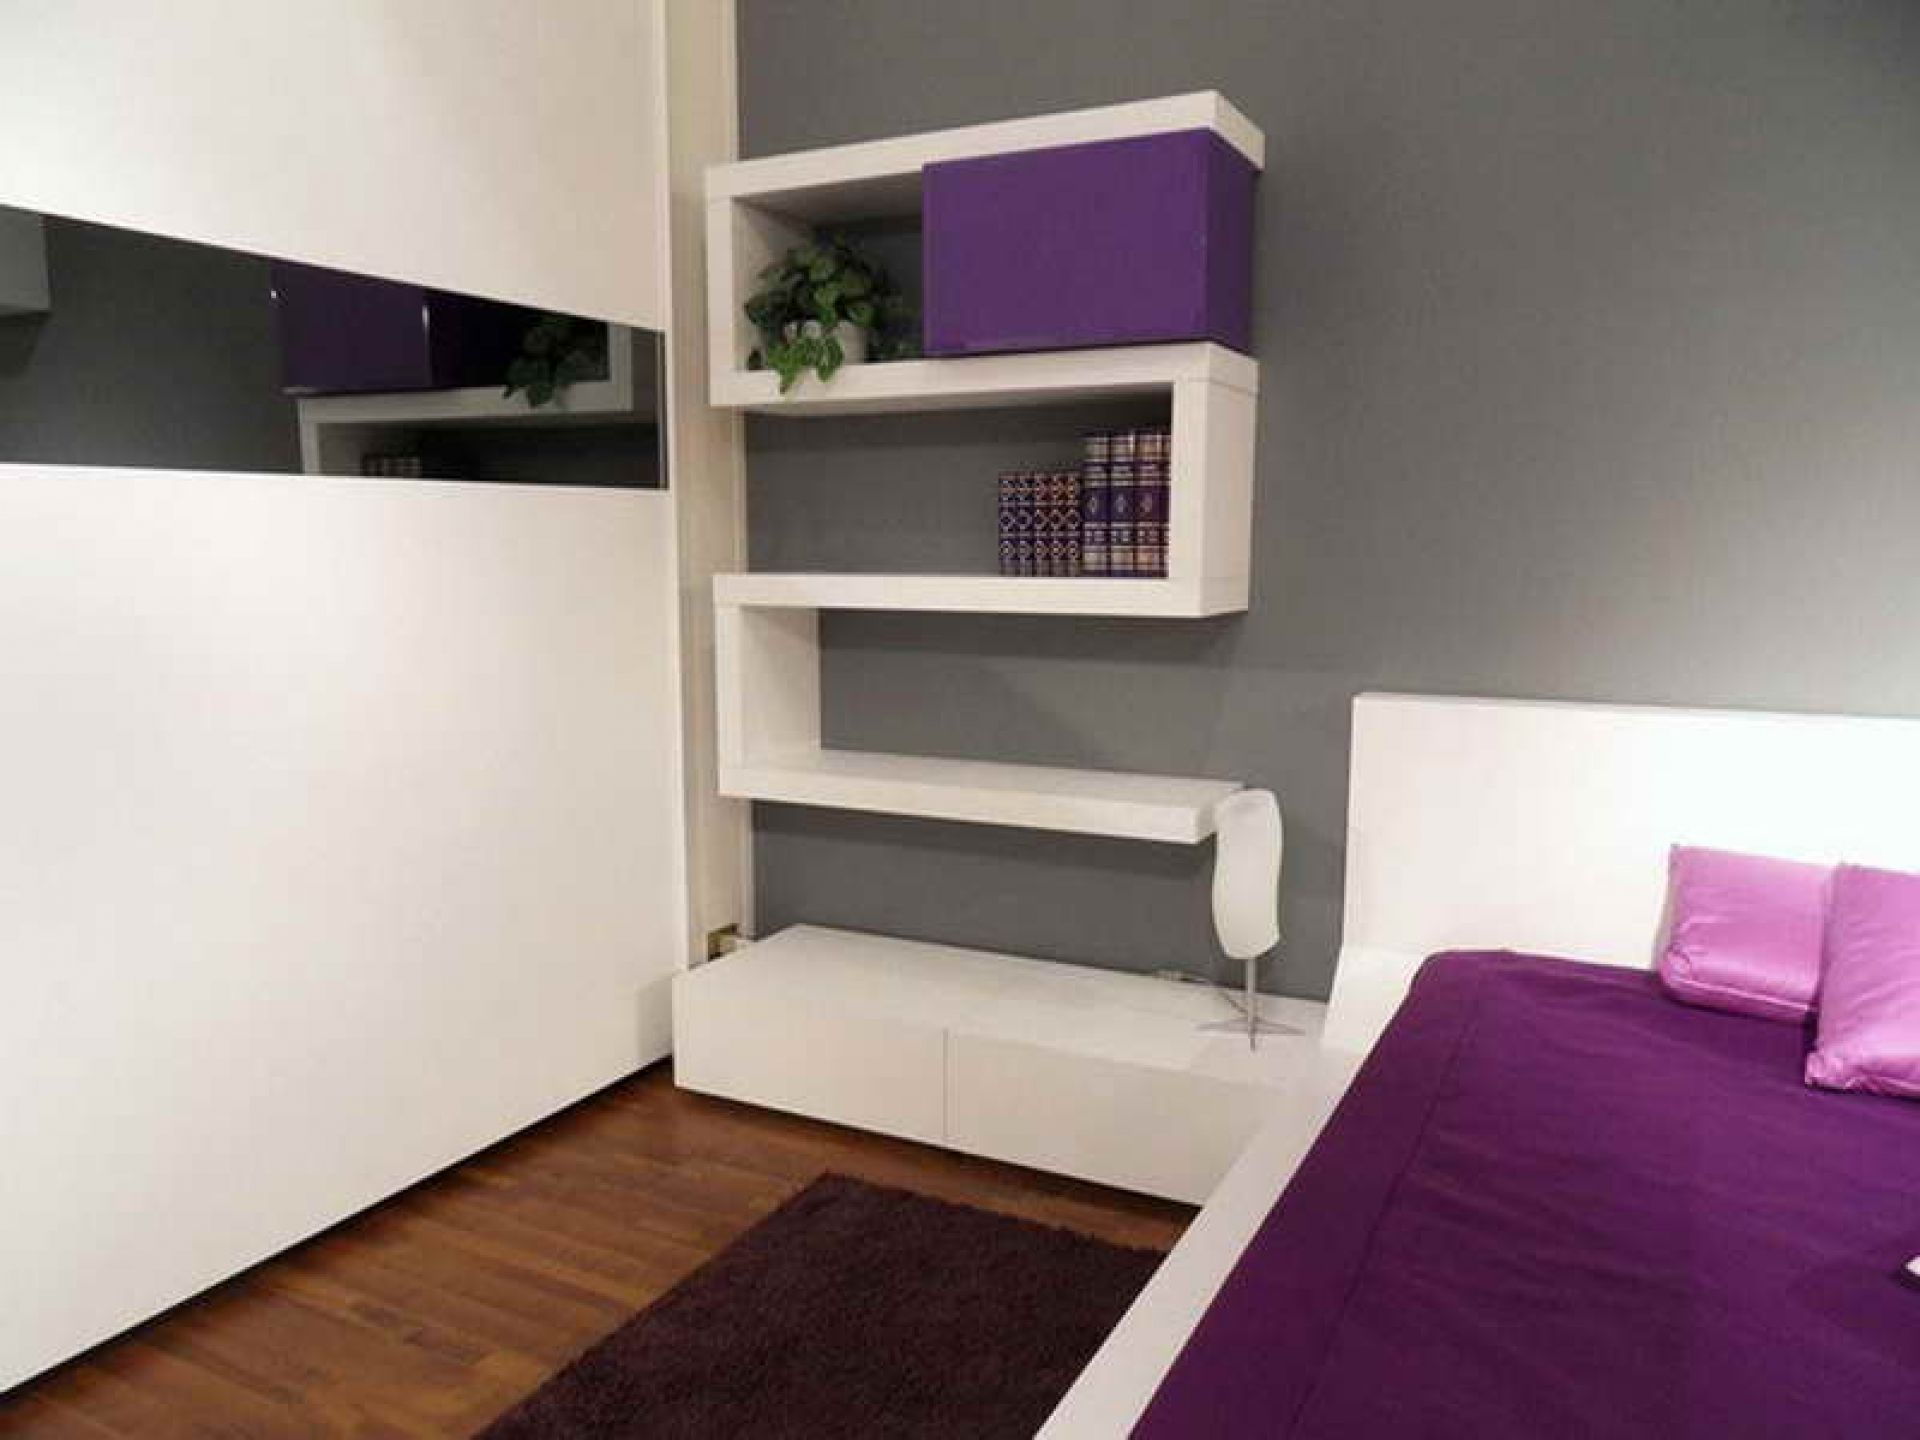 Cool Wall Bookshelf Google Search Shelves In Bedroom Wall Shelves Bedroom Minimalist Bedroom Design